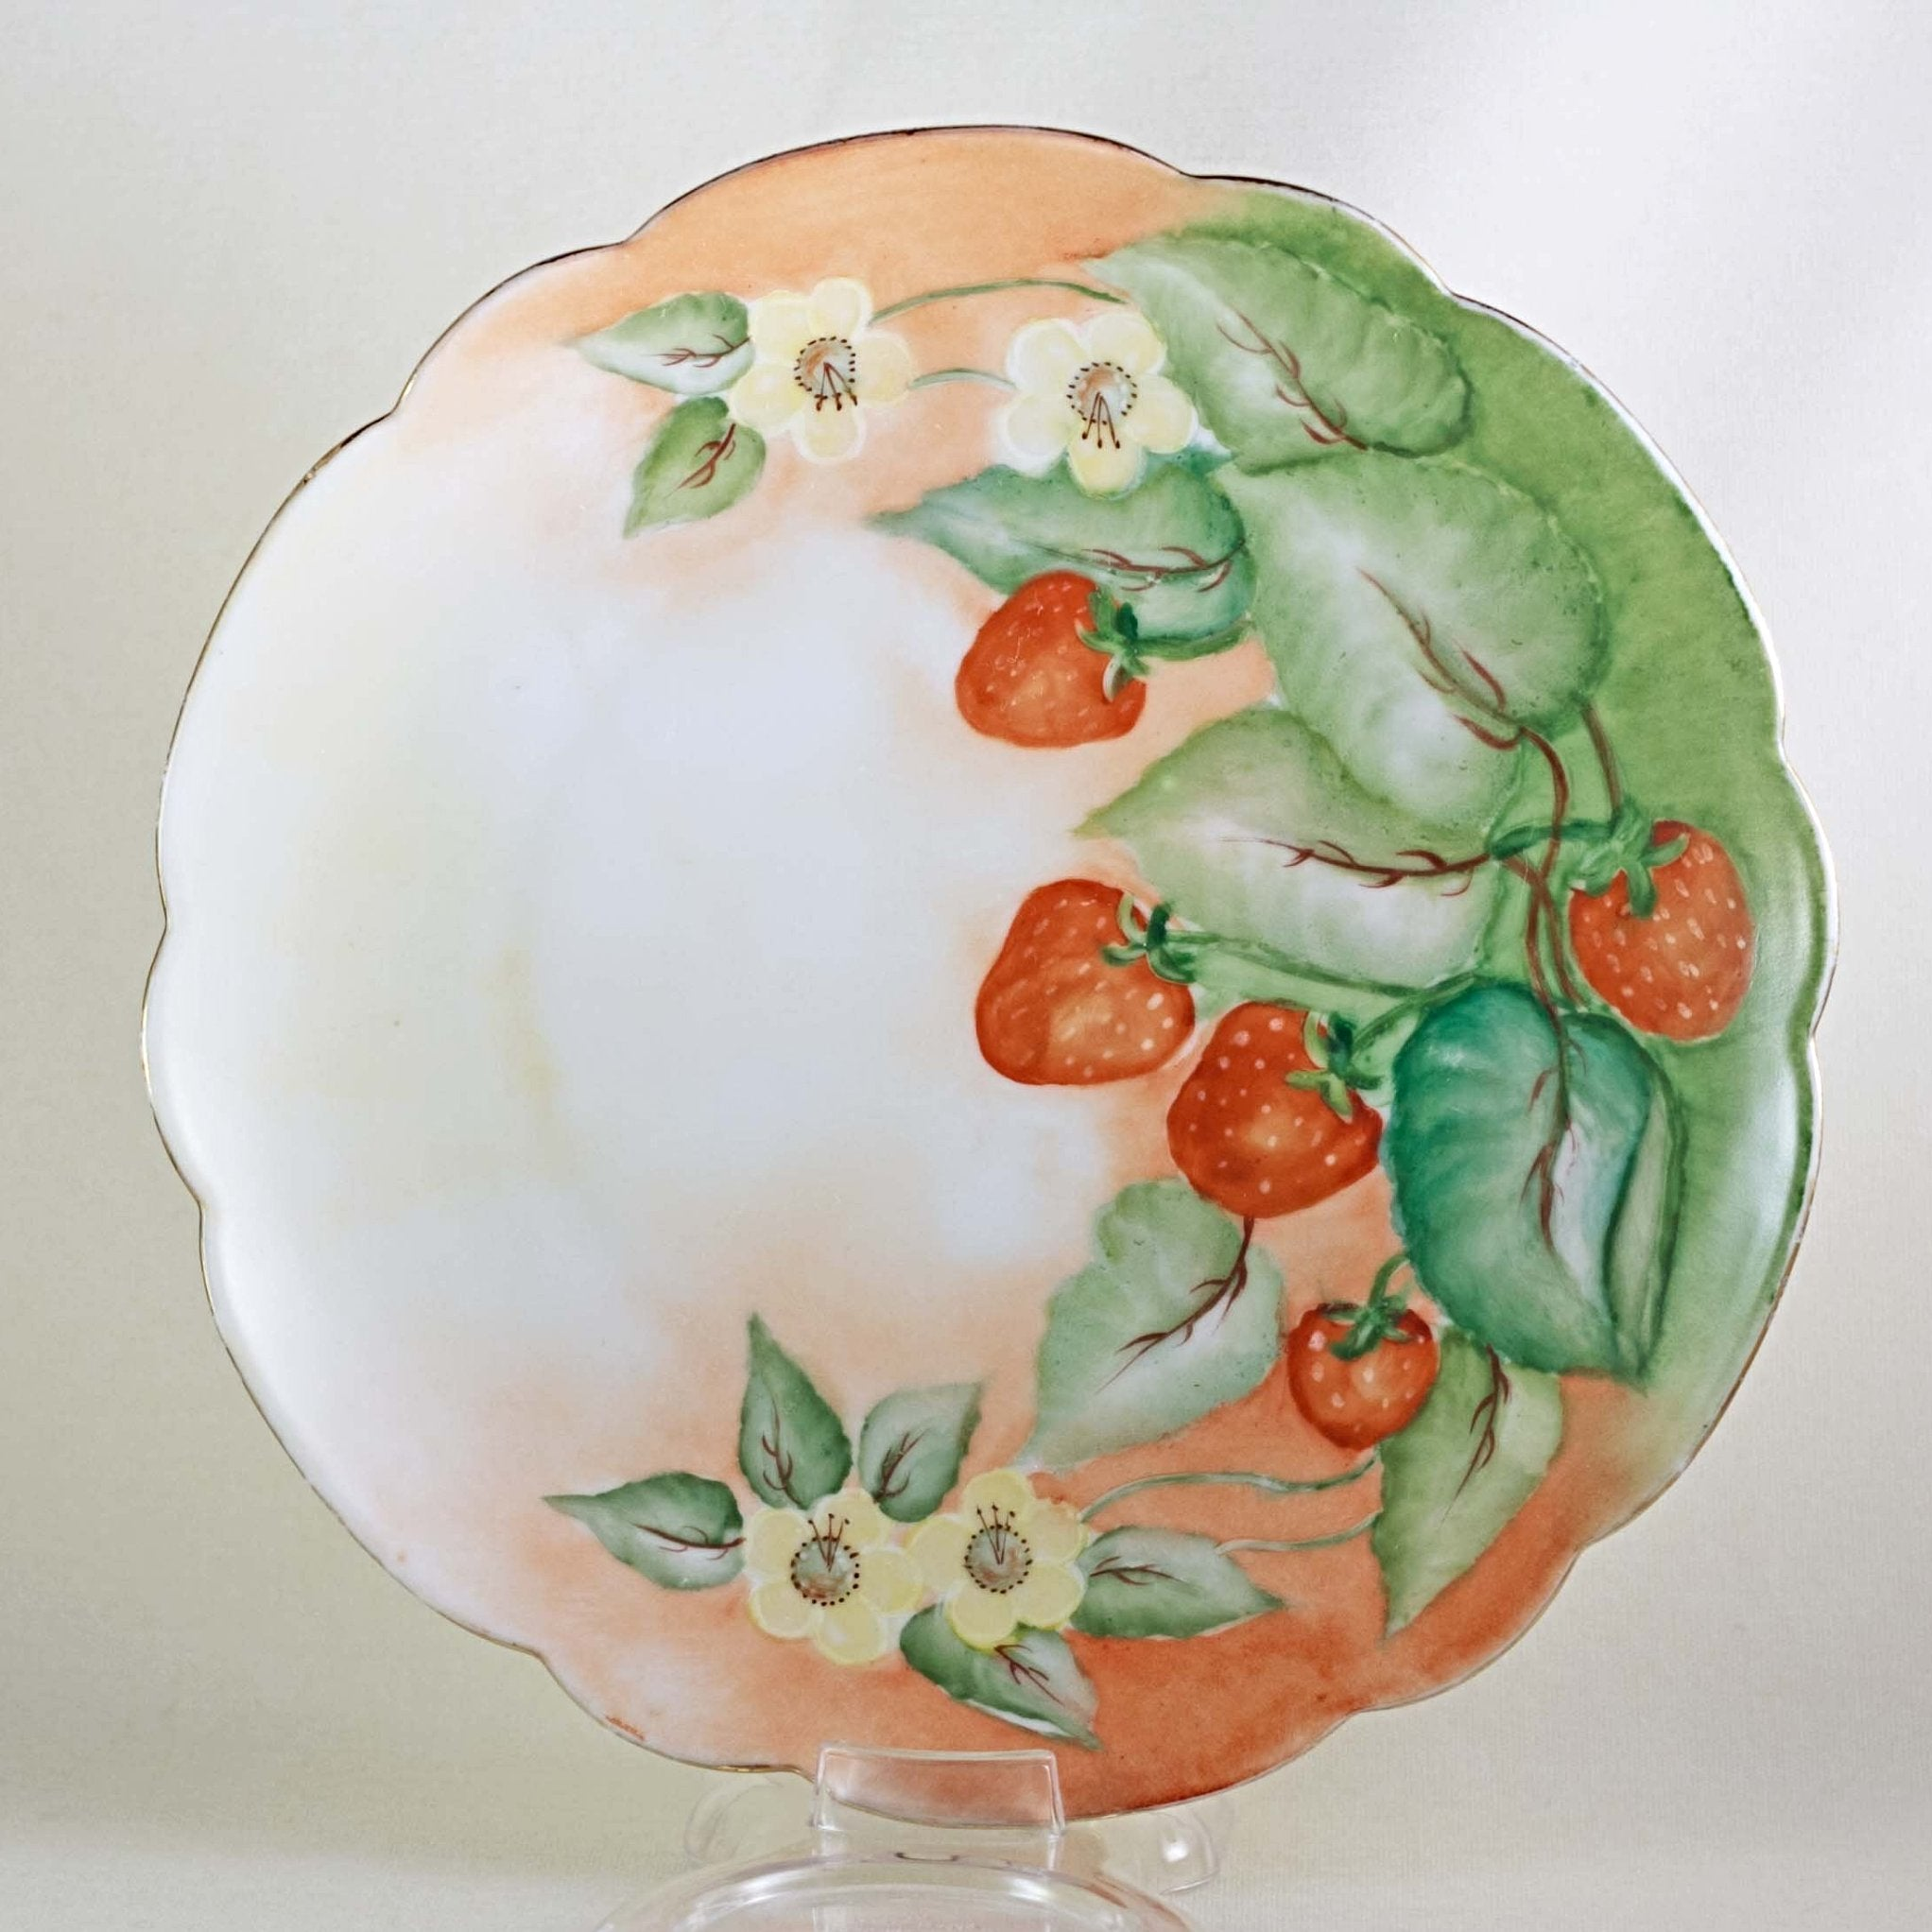 BAVARIA PORCELAIN PLATE Hand Painted with Strawberries and Blossoms Circa 1940s